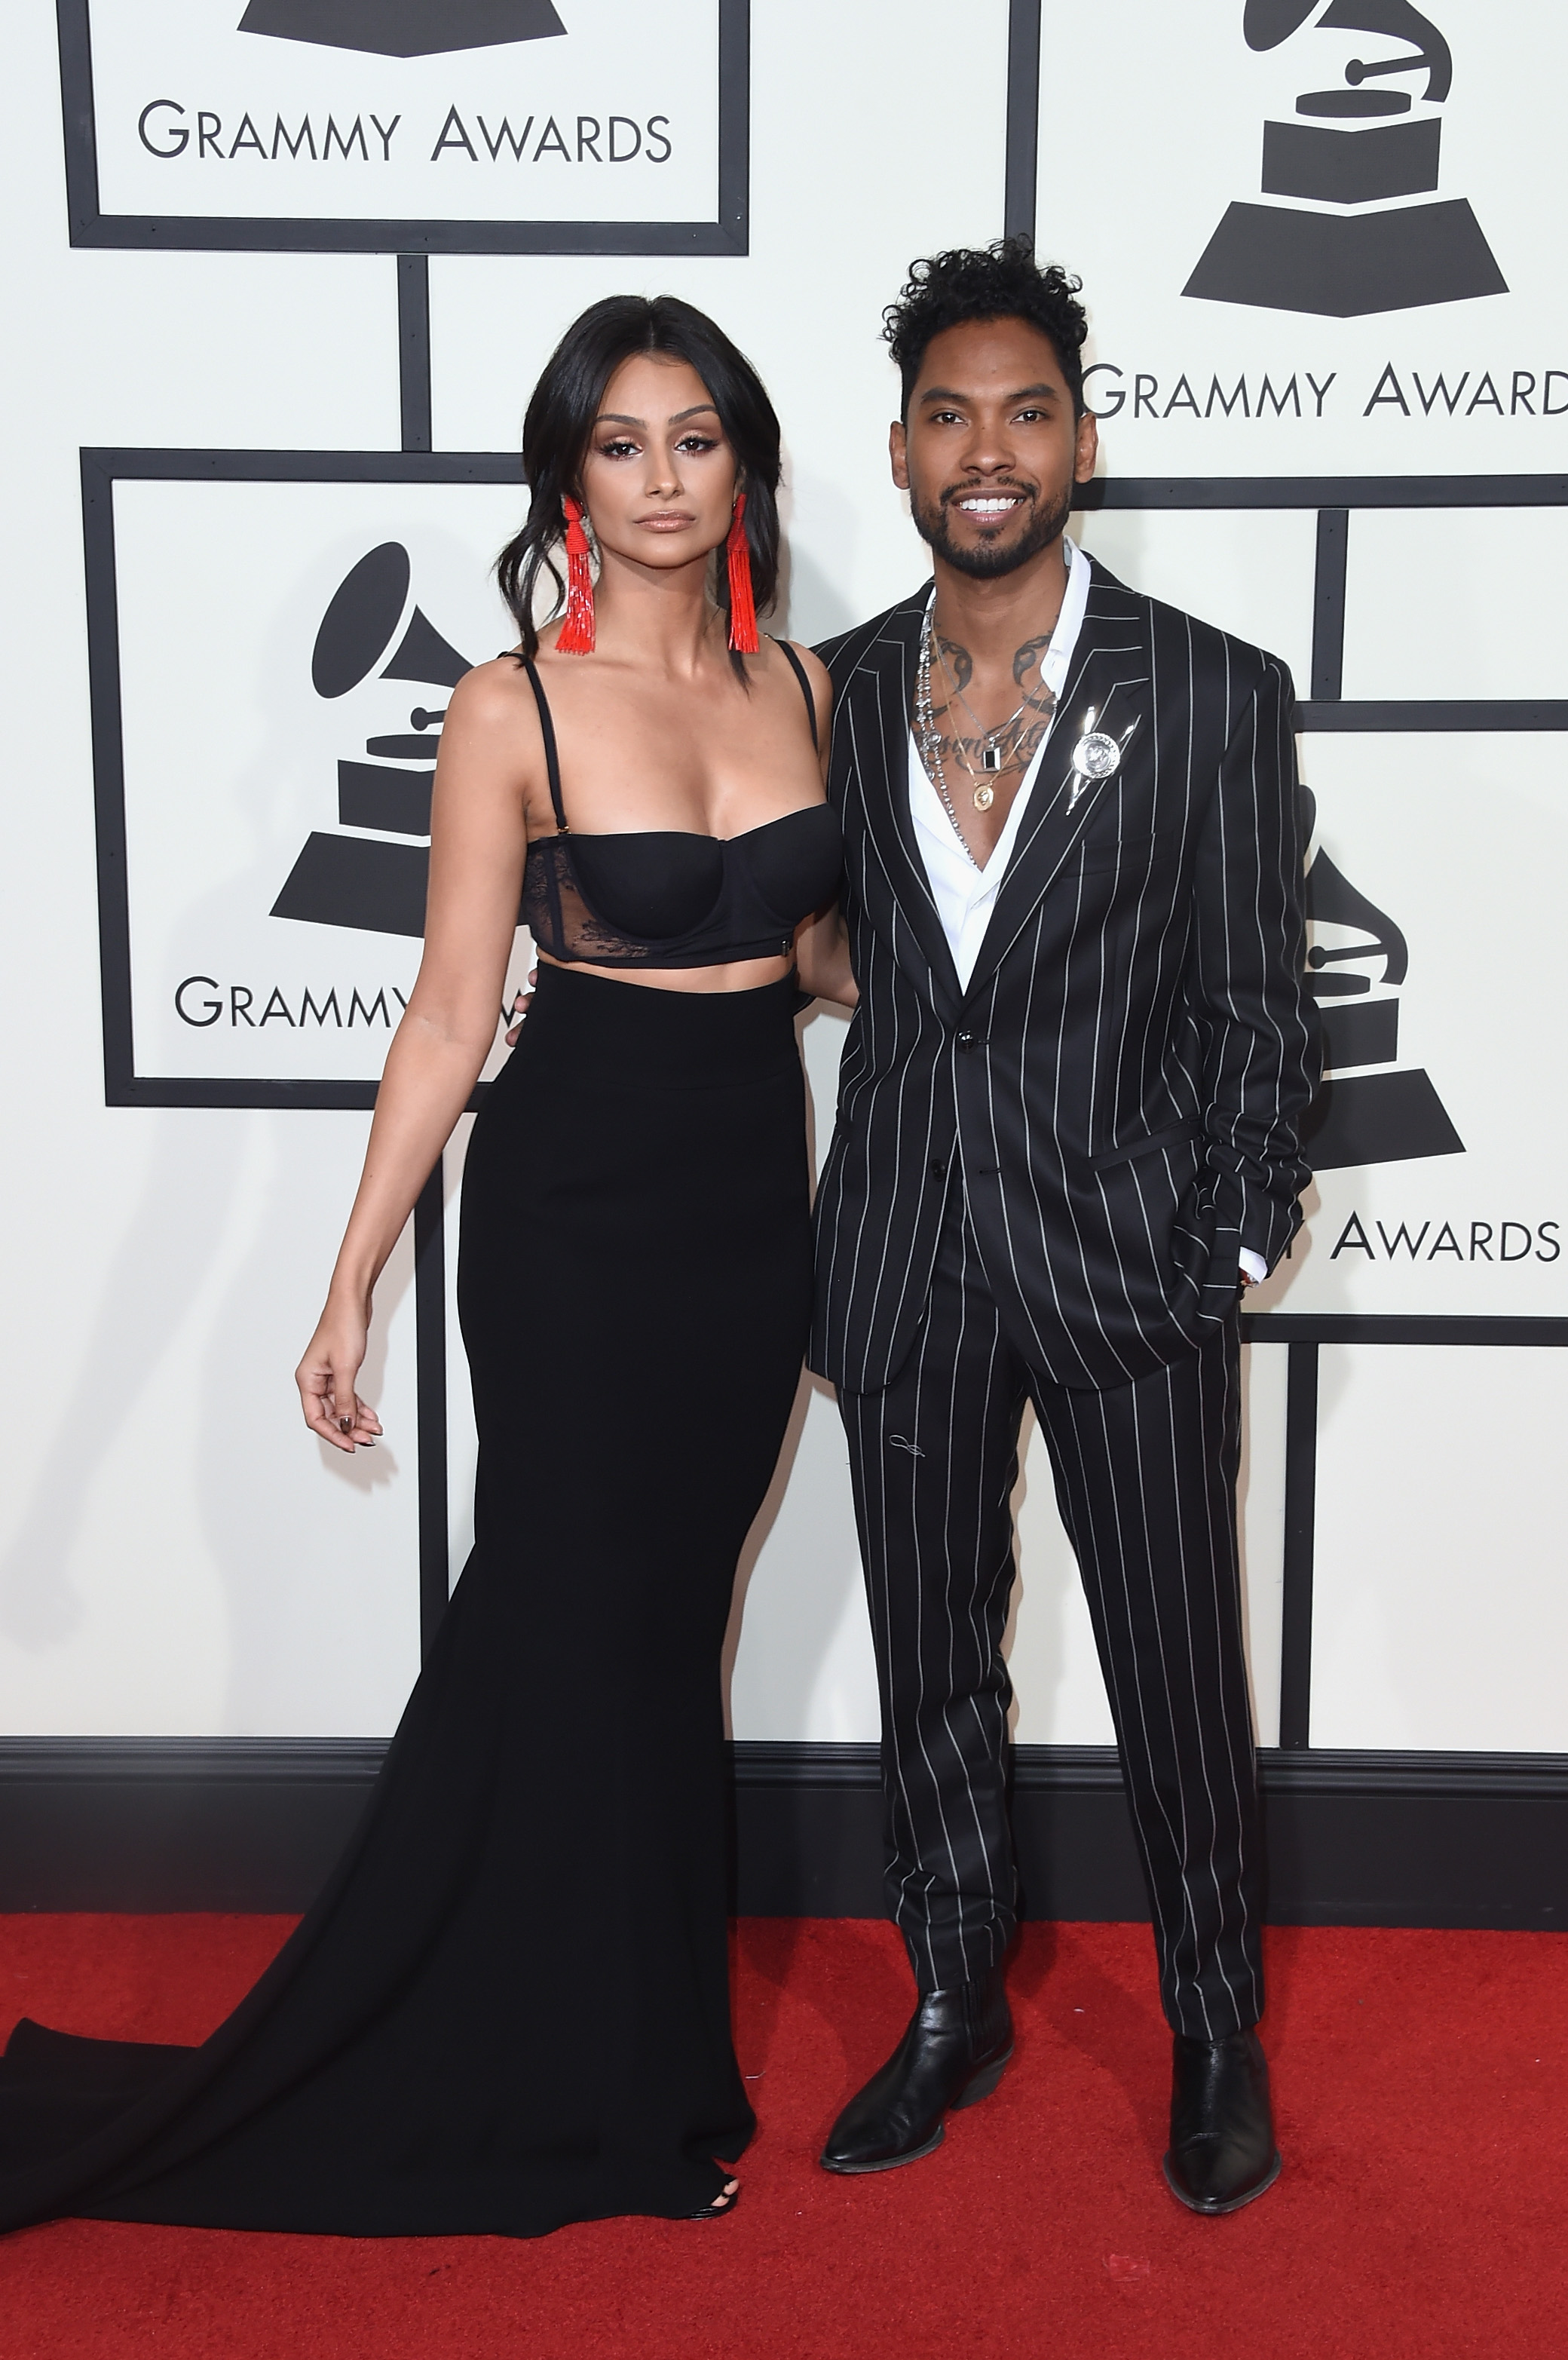 Nazanin Mandi, left, and Miguel, right, attend the 58th GRAMMY Awards at Staples Center on Feb. 15, 2016 in Los Angeles.